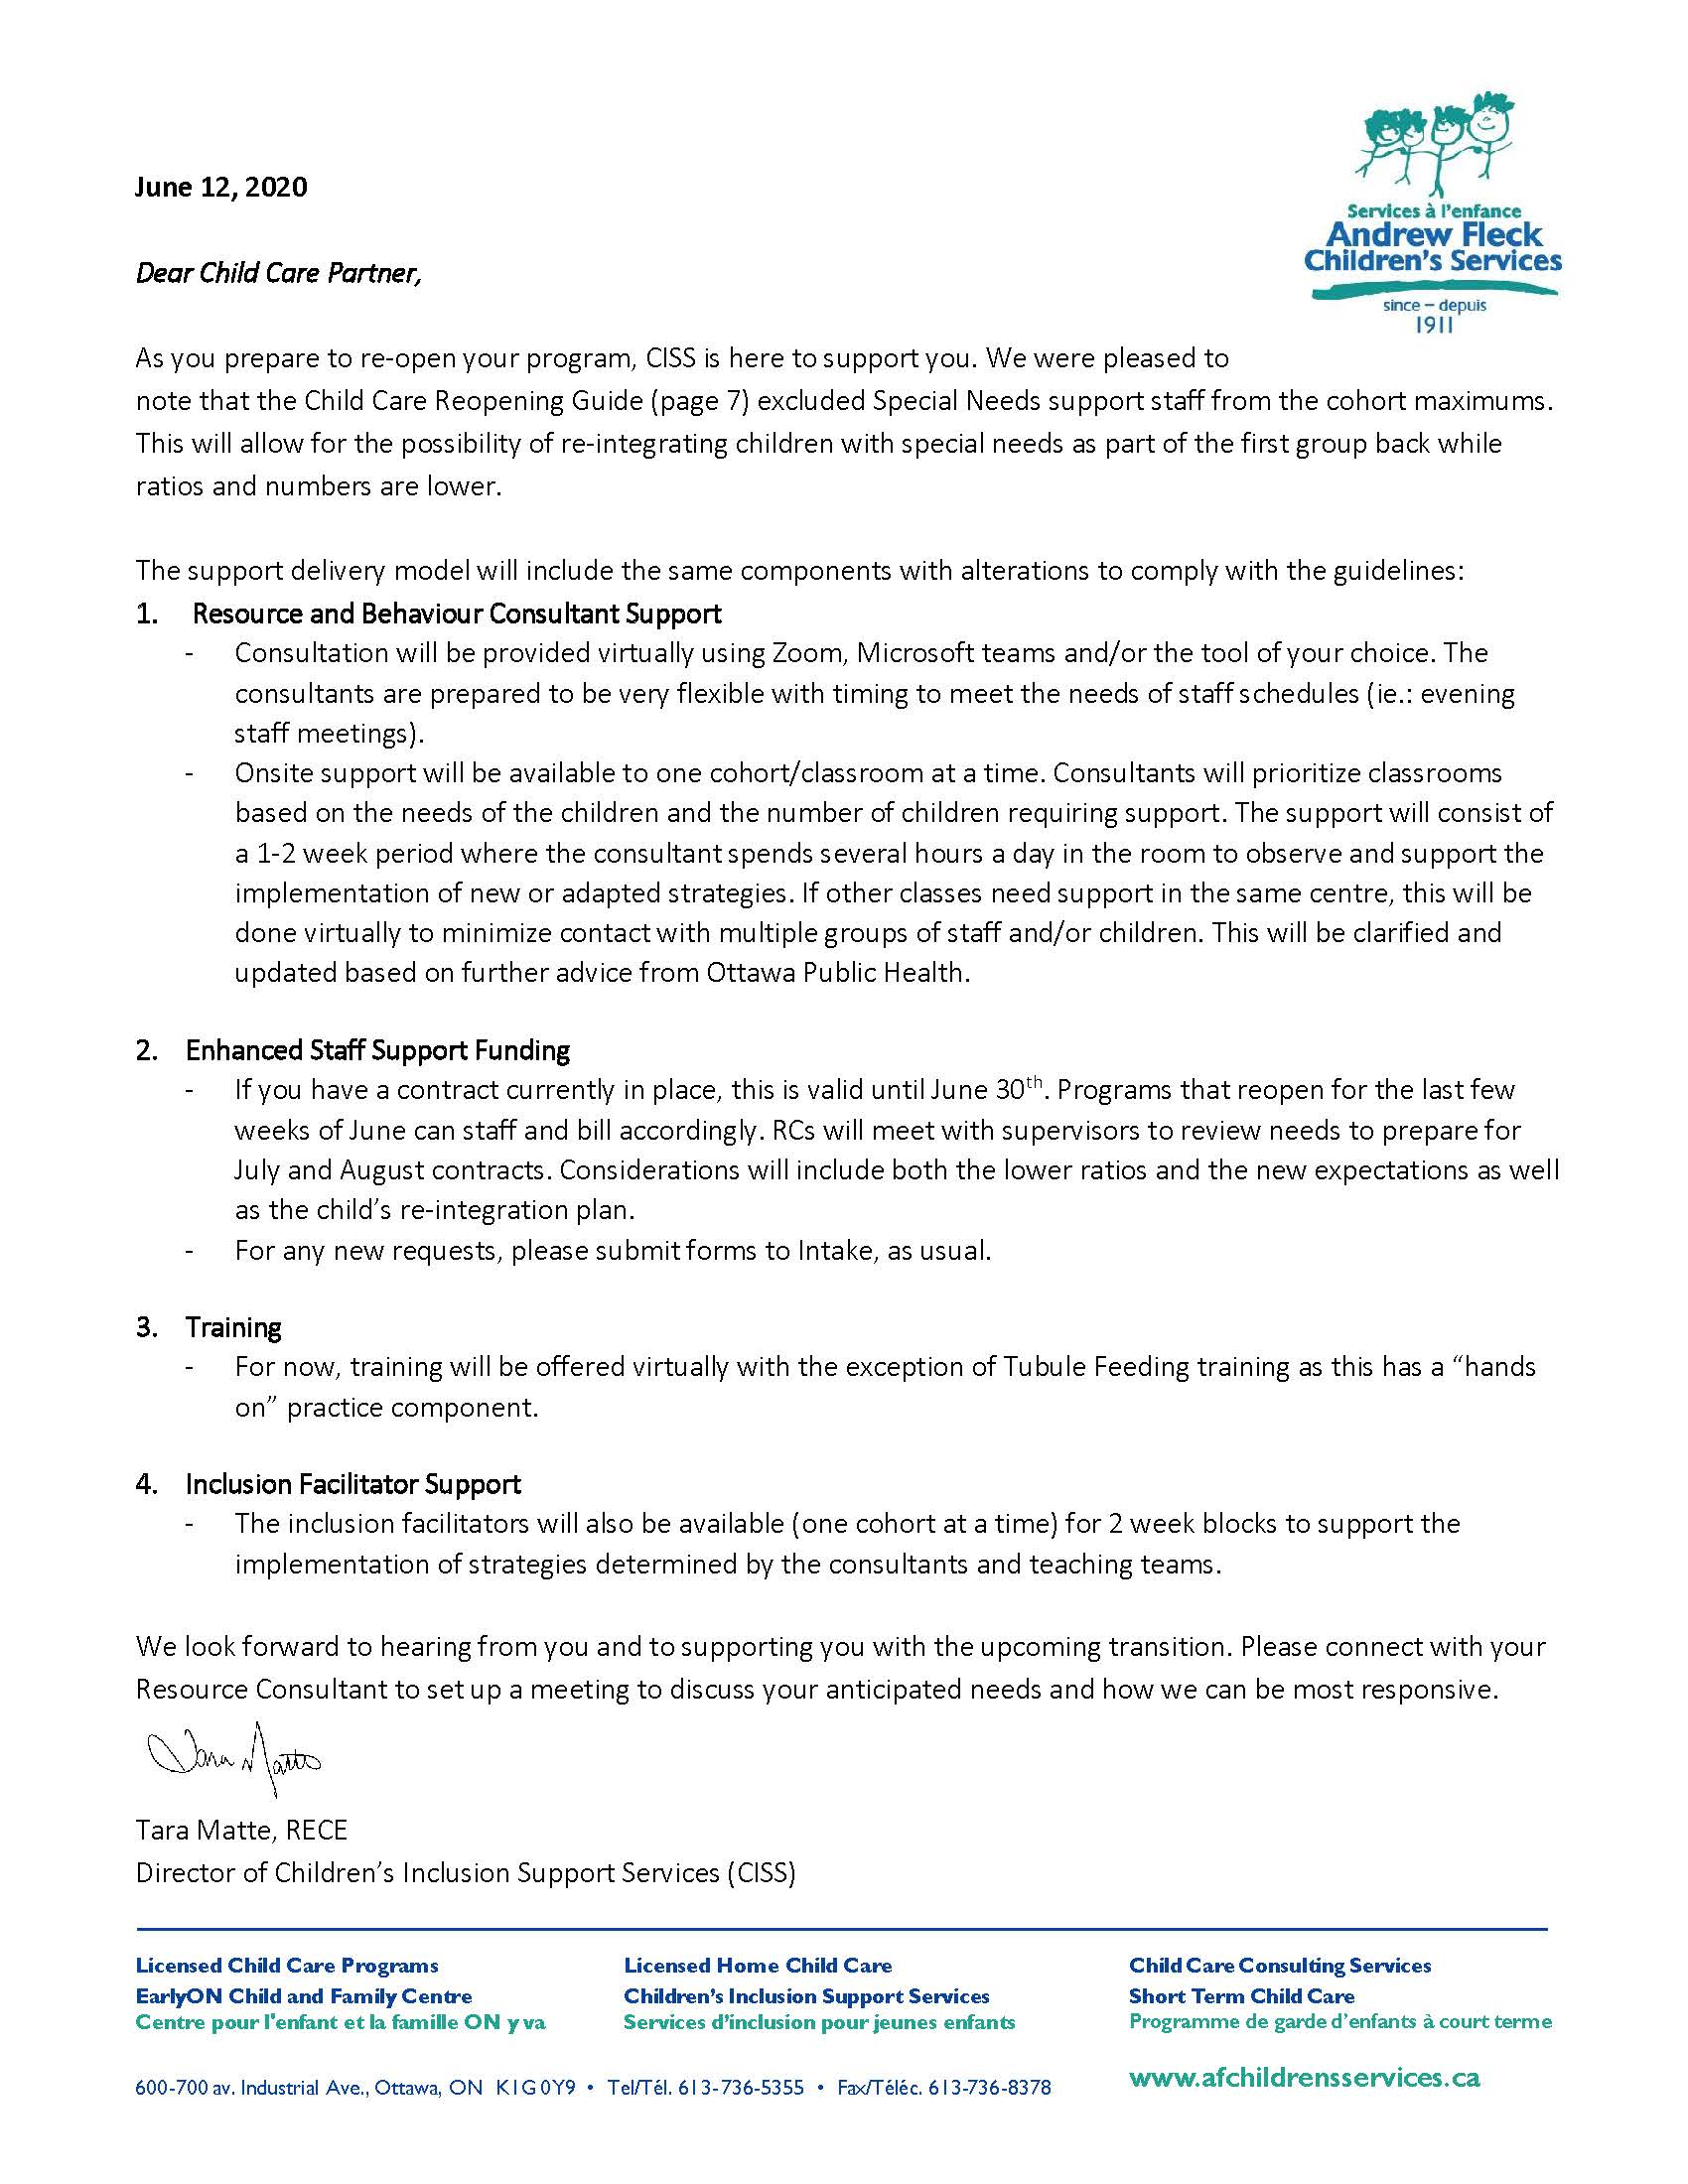 Letter - Child Care Partner - June 2020